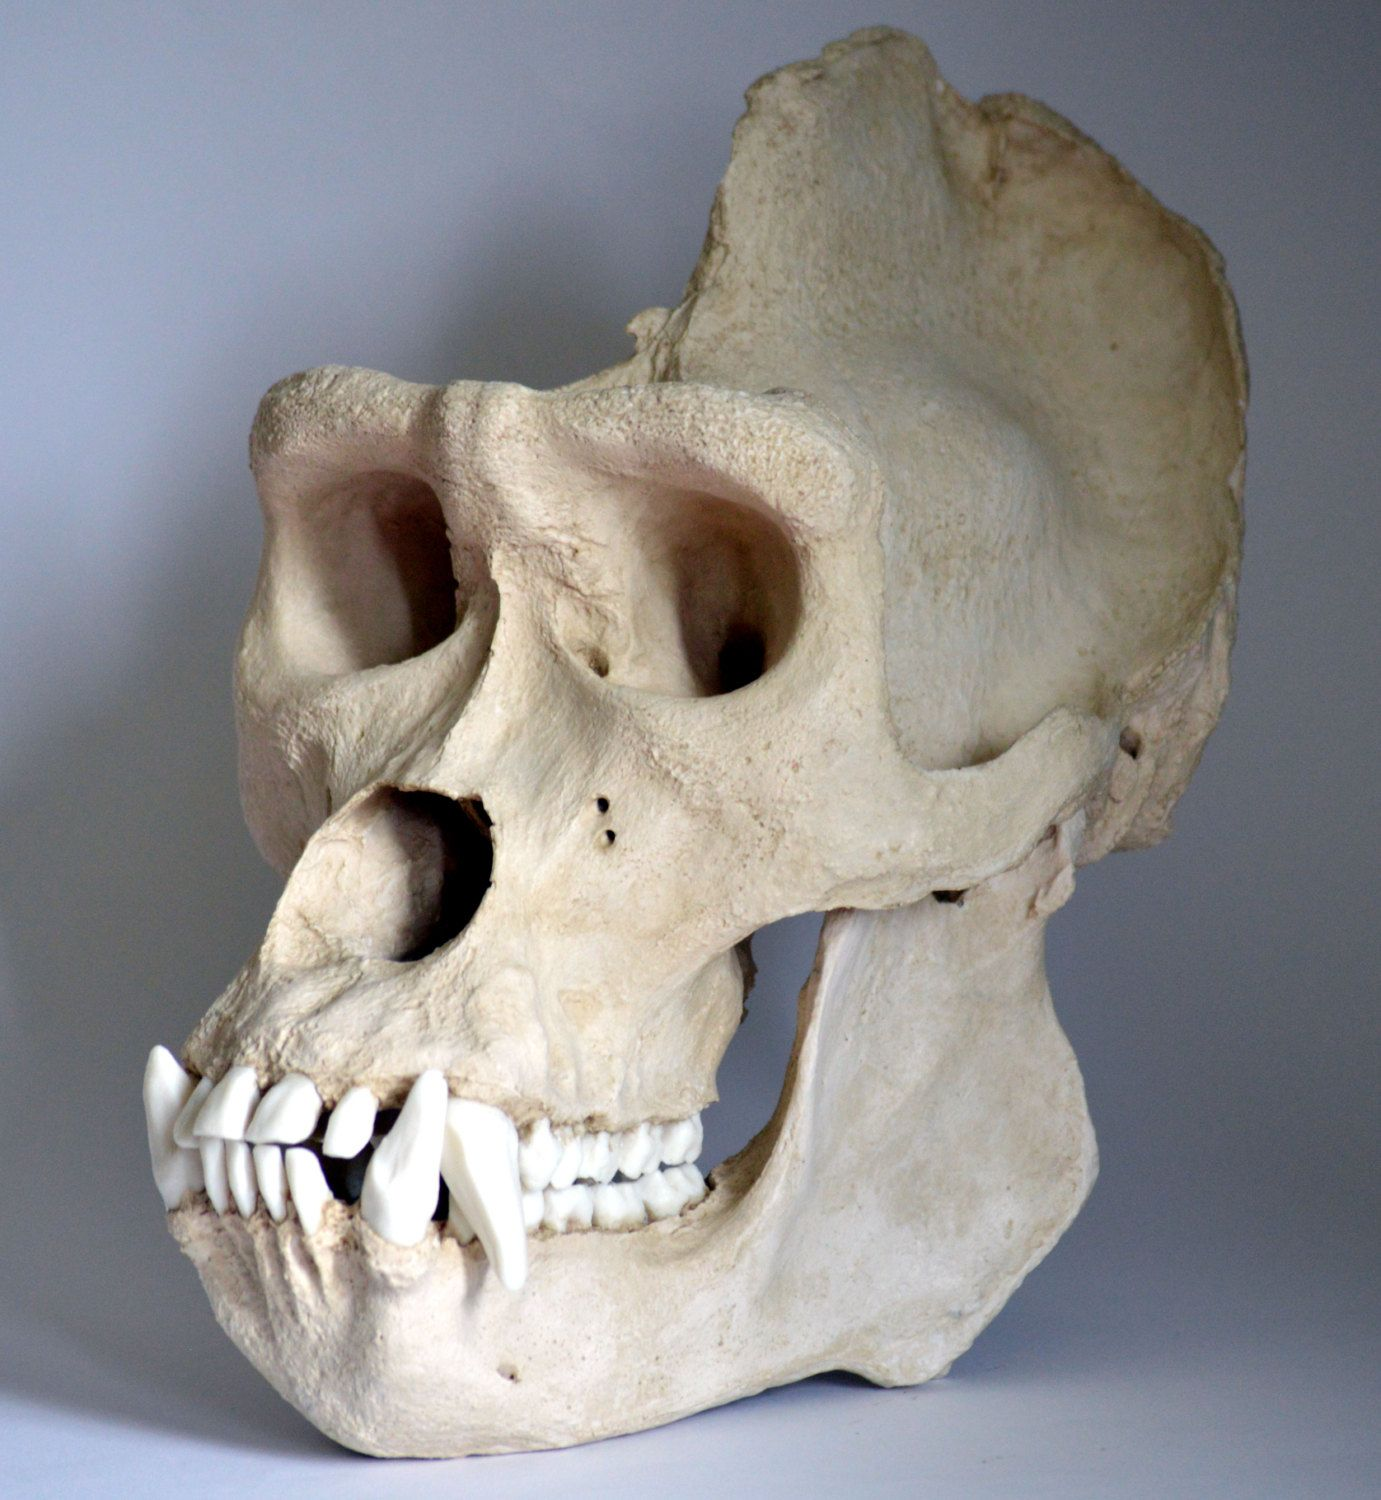 gorilla skull - Google Search | Gorilla Anatomy and ...